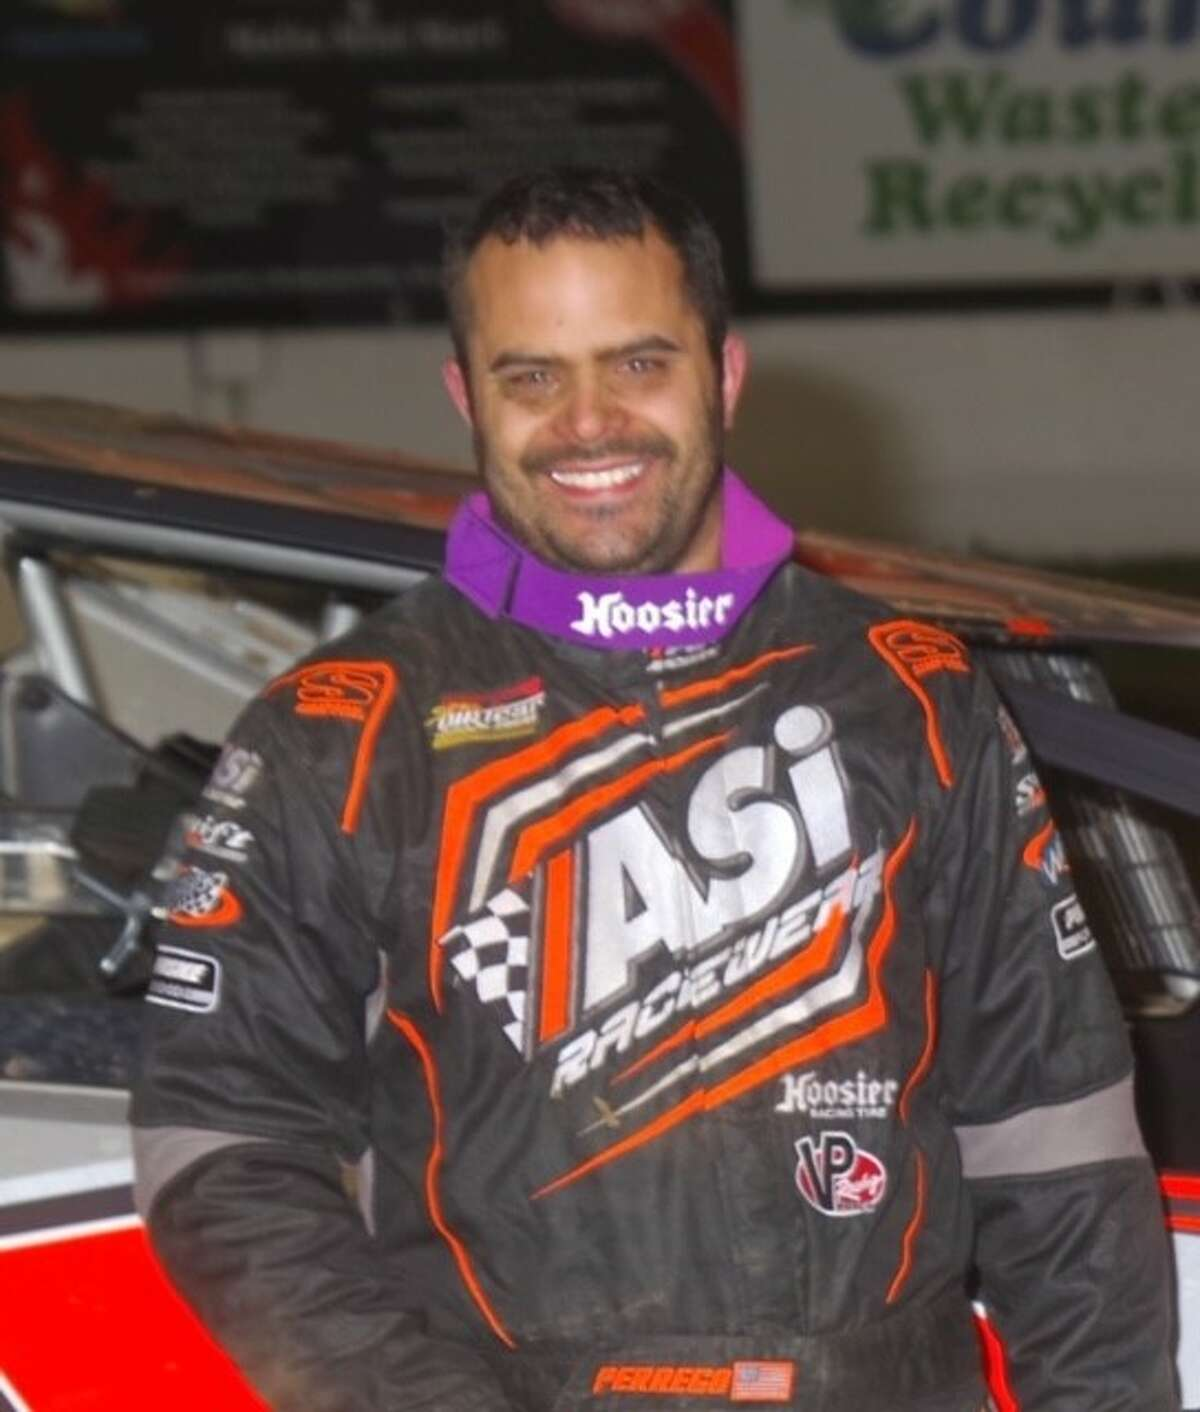 Race car driver Anthony Perrego. (Courtesy of Mark Brown Photography)